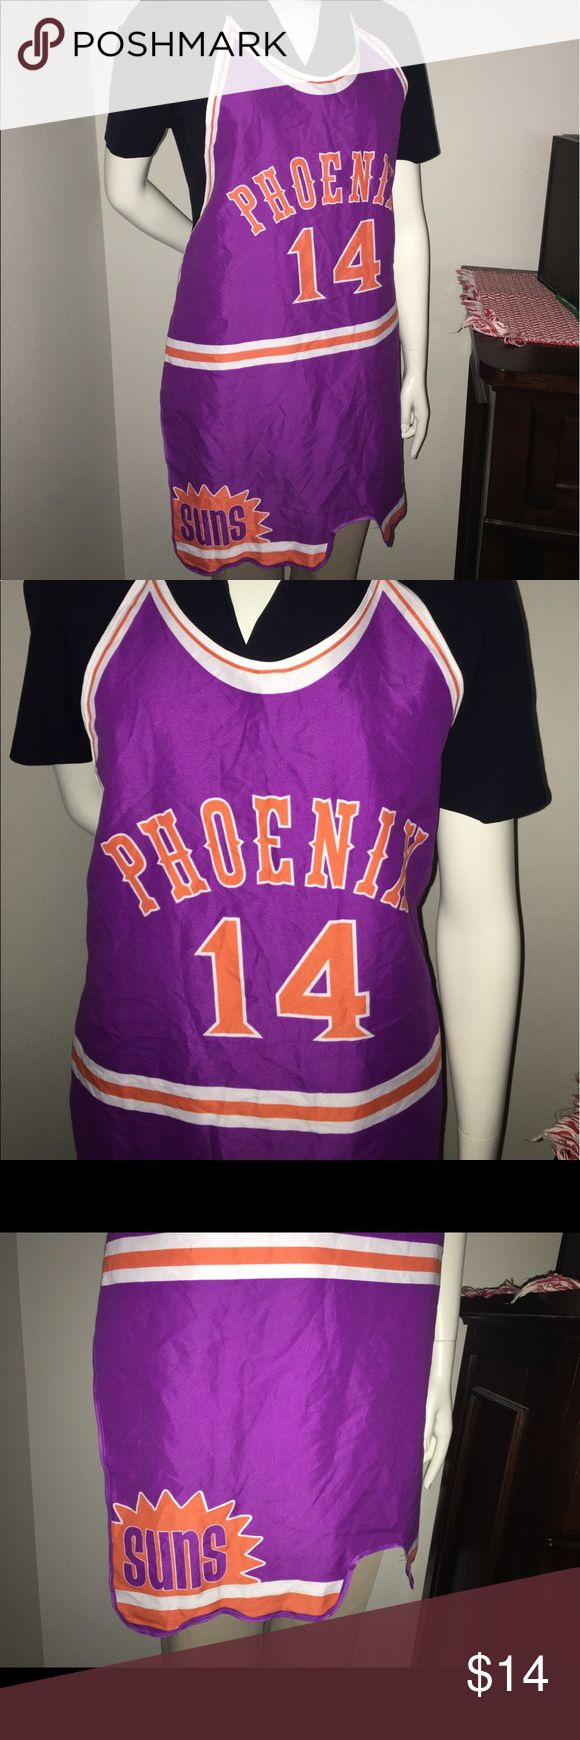 Jeff hornacek classic phoenix apron NWOT Thank you for viewing my listing, for sale is an adult, men's or women's, vintage looking, Phoenix Suns, Jeff Hornacek #14, apron. This apron looks like the old-school classic Phoenix Suns jersey with the little short shorts.   New without tags.   If you have any questions or would like additional photos please feel free to ask. NBA Accessories